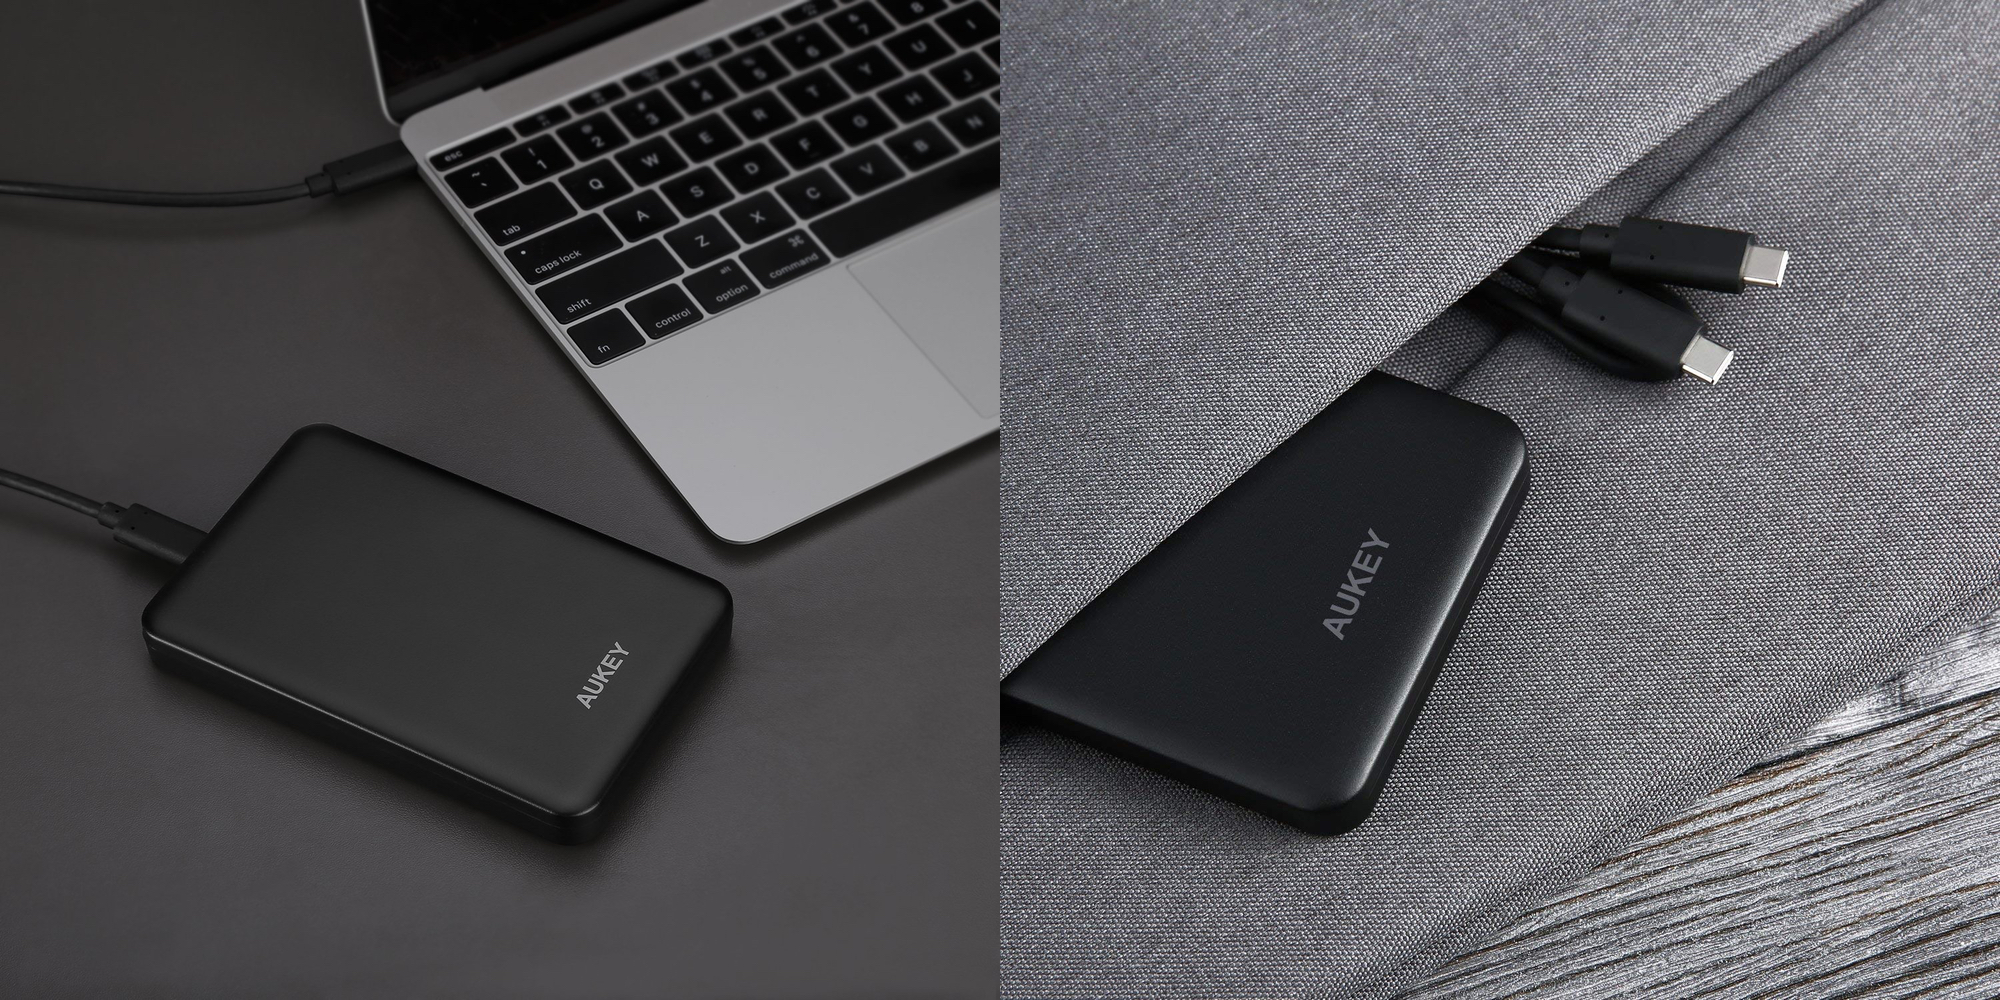 Expand your computer's storage w/ the Aukey USB-C Hard Drive Enclosure at $11 (Reg. $15)